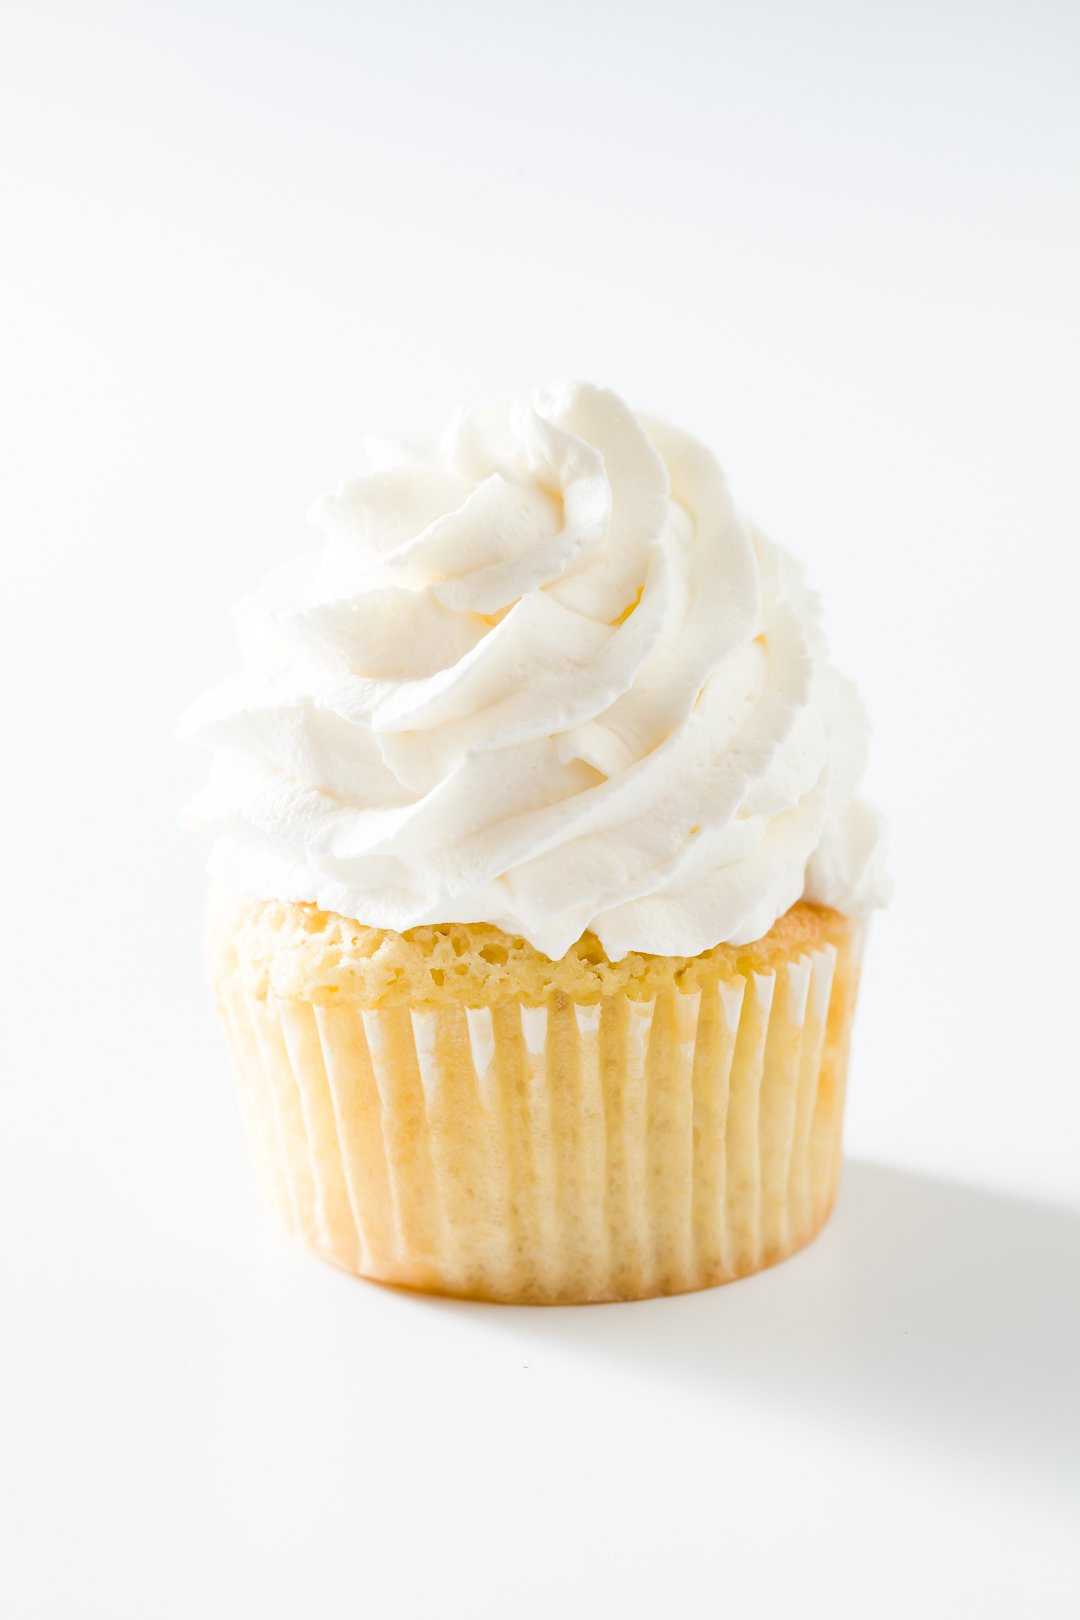 Chantilly cream on a cupcake